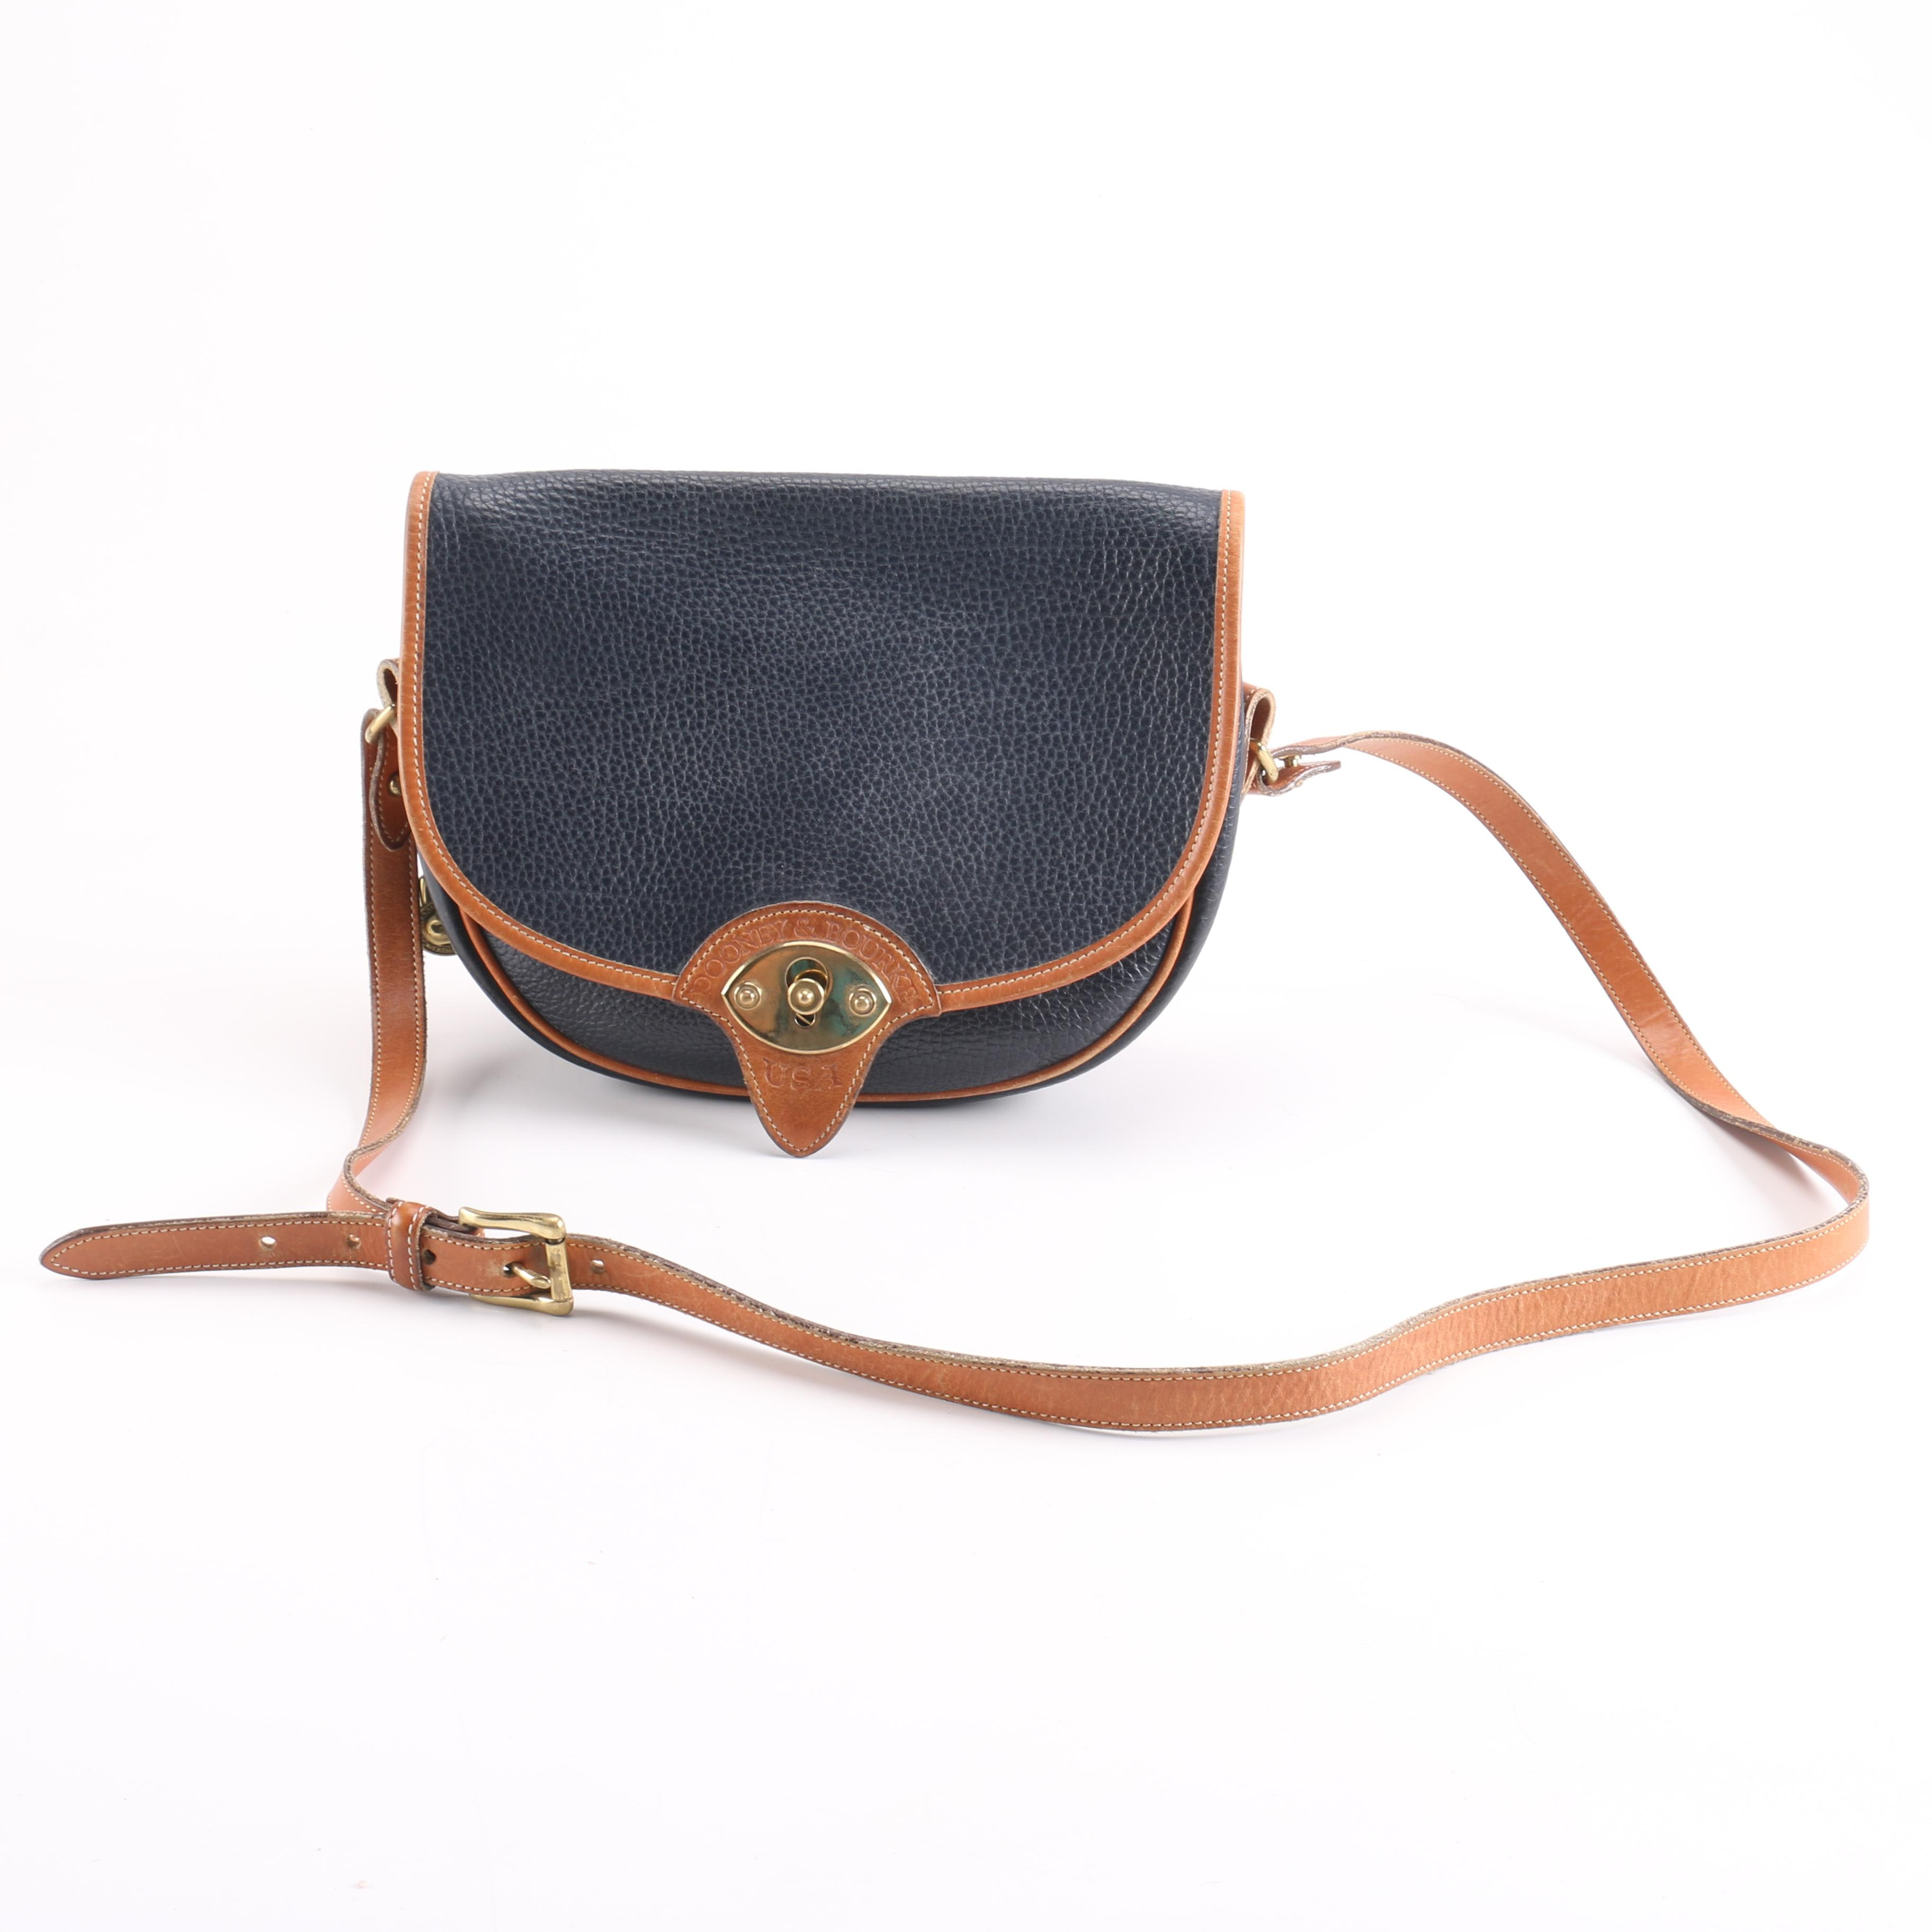 Tan and Pebbled Blue Leather Dooney & Bourke Purse